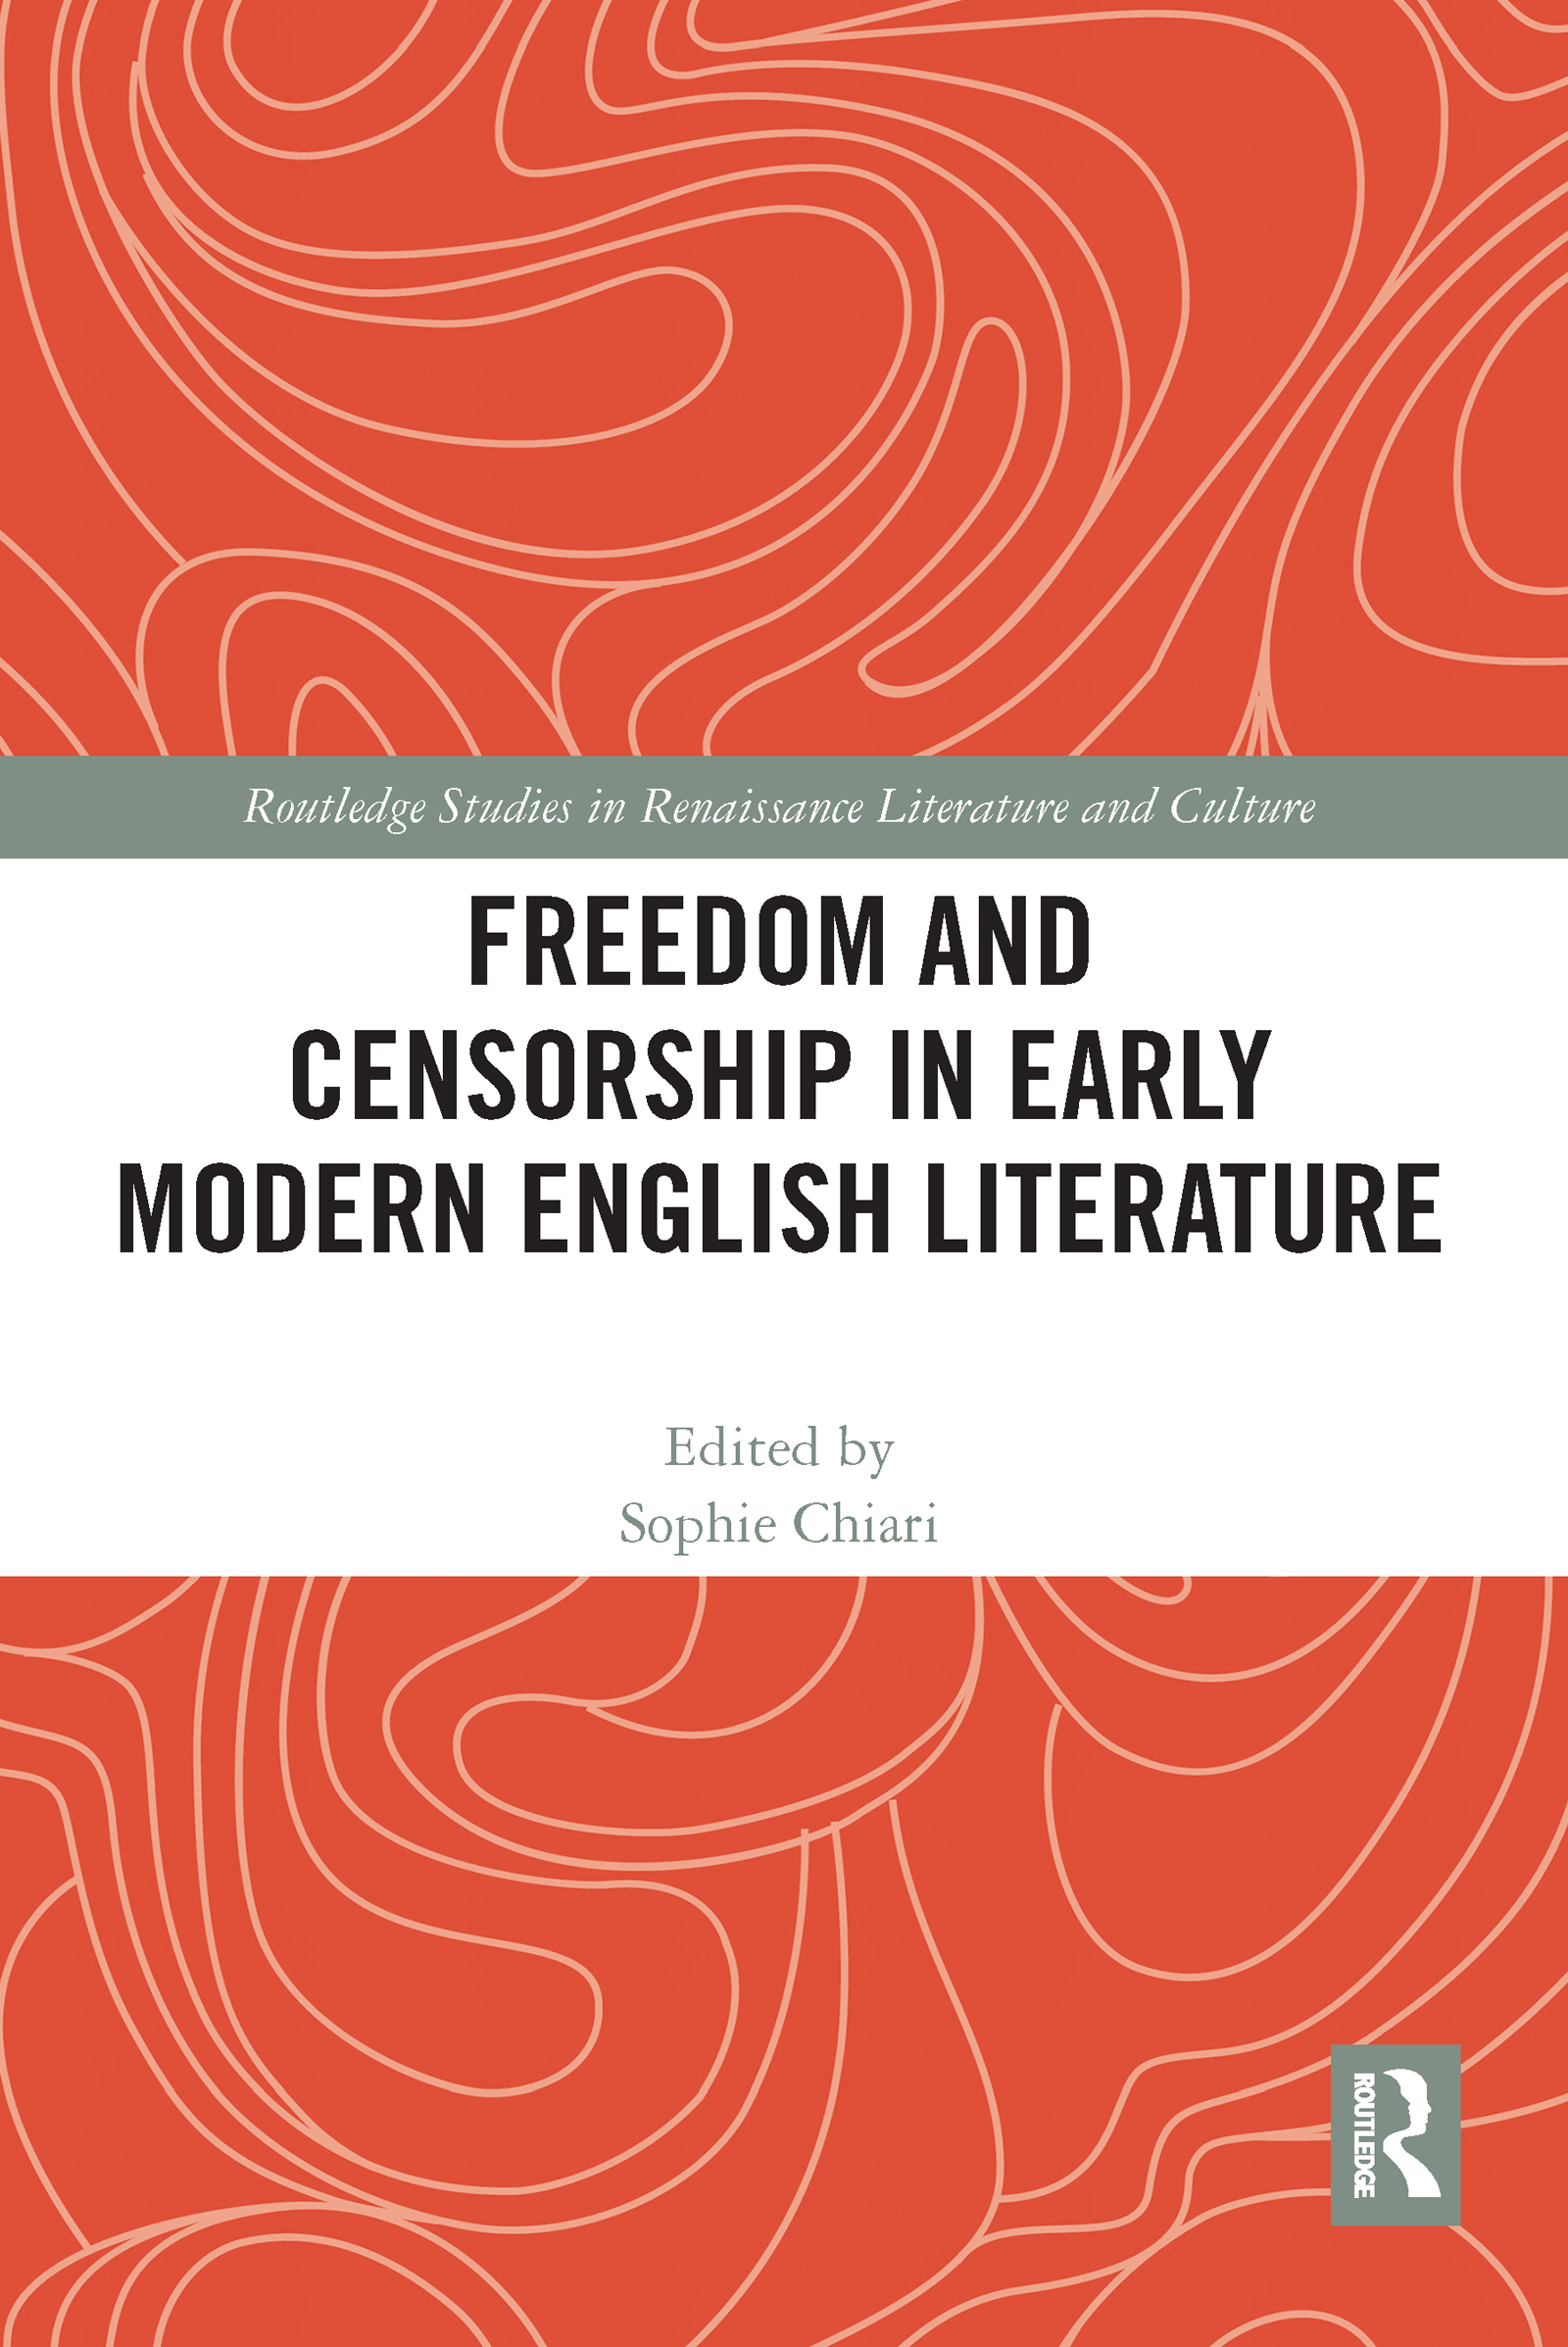 Freedom and Censorship in Early Modern English Literature